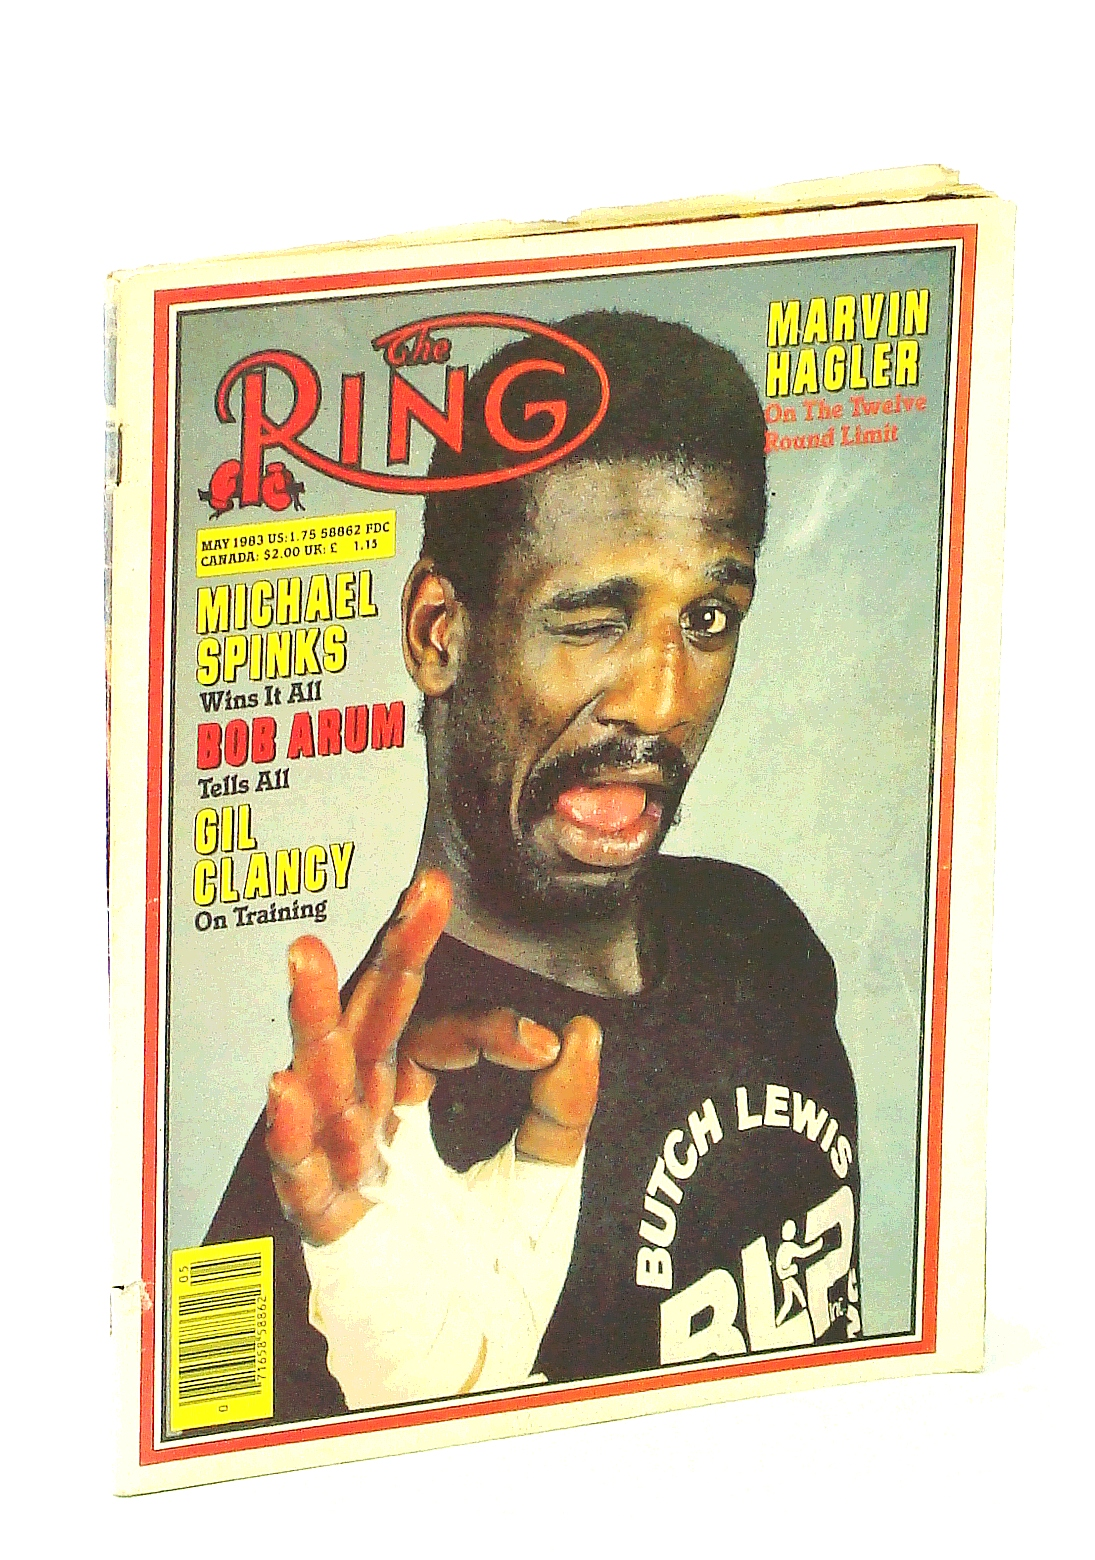 Image for The Ring [Magazine] - The Bible of Boxing, May 1983 - Michael Spinks Cover Photo